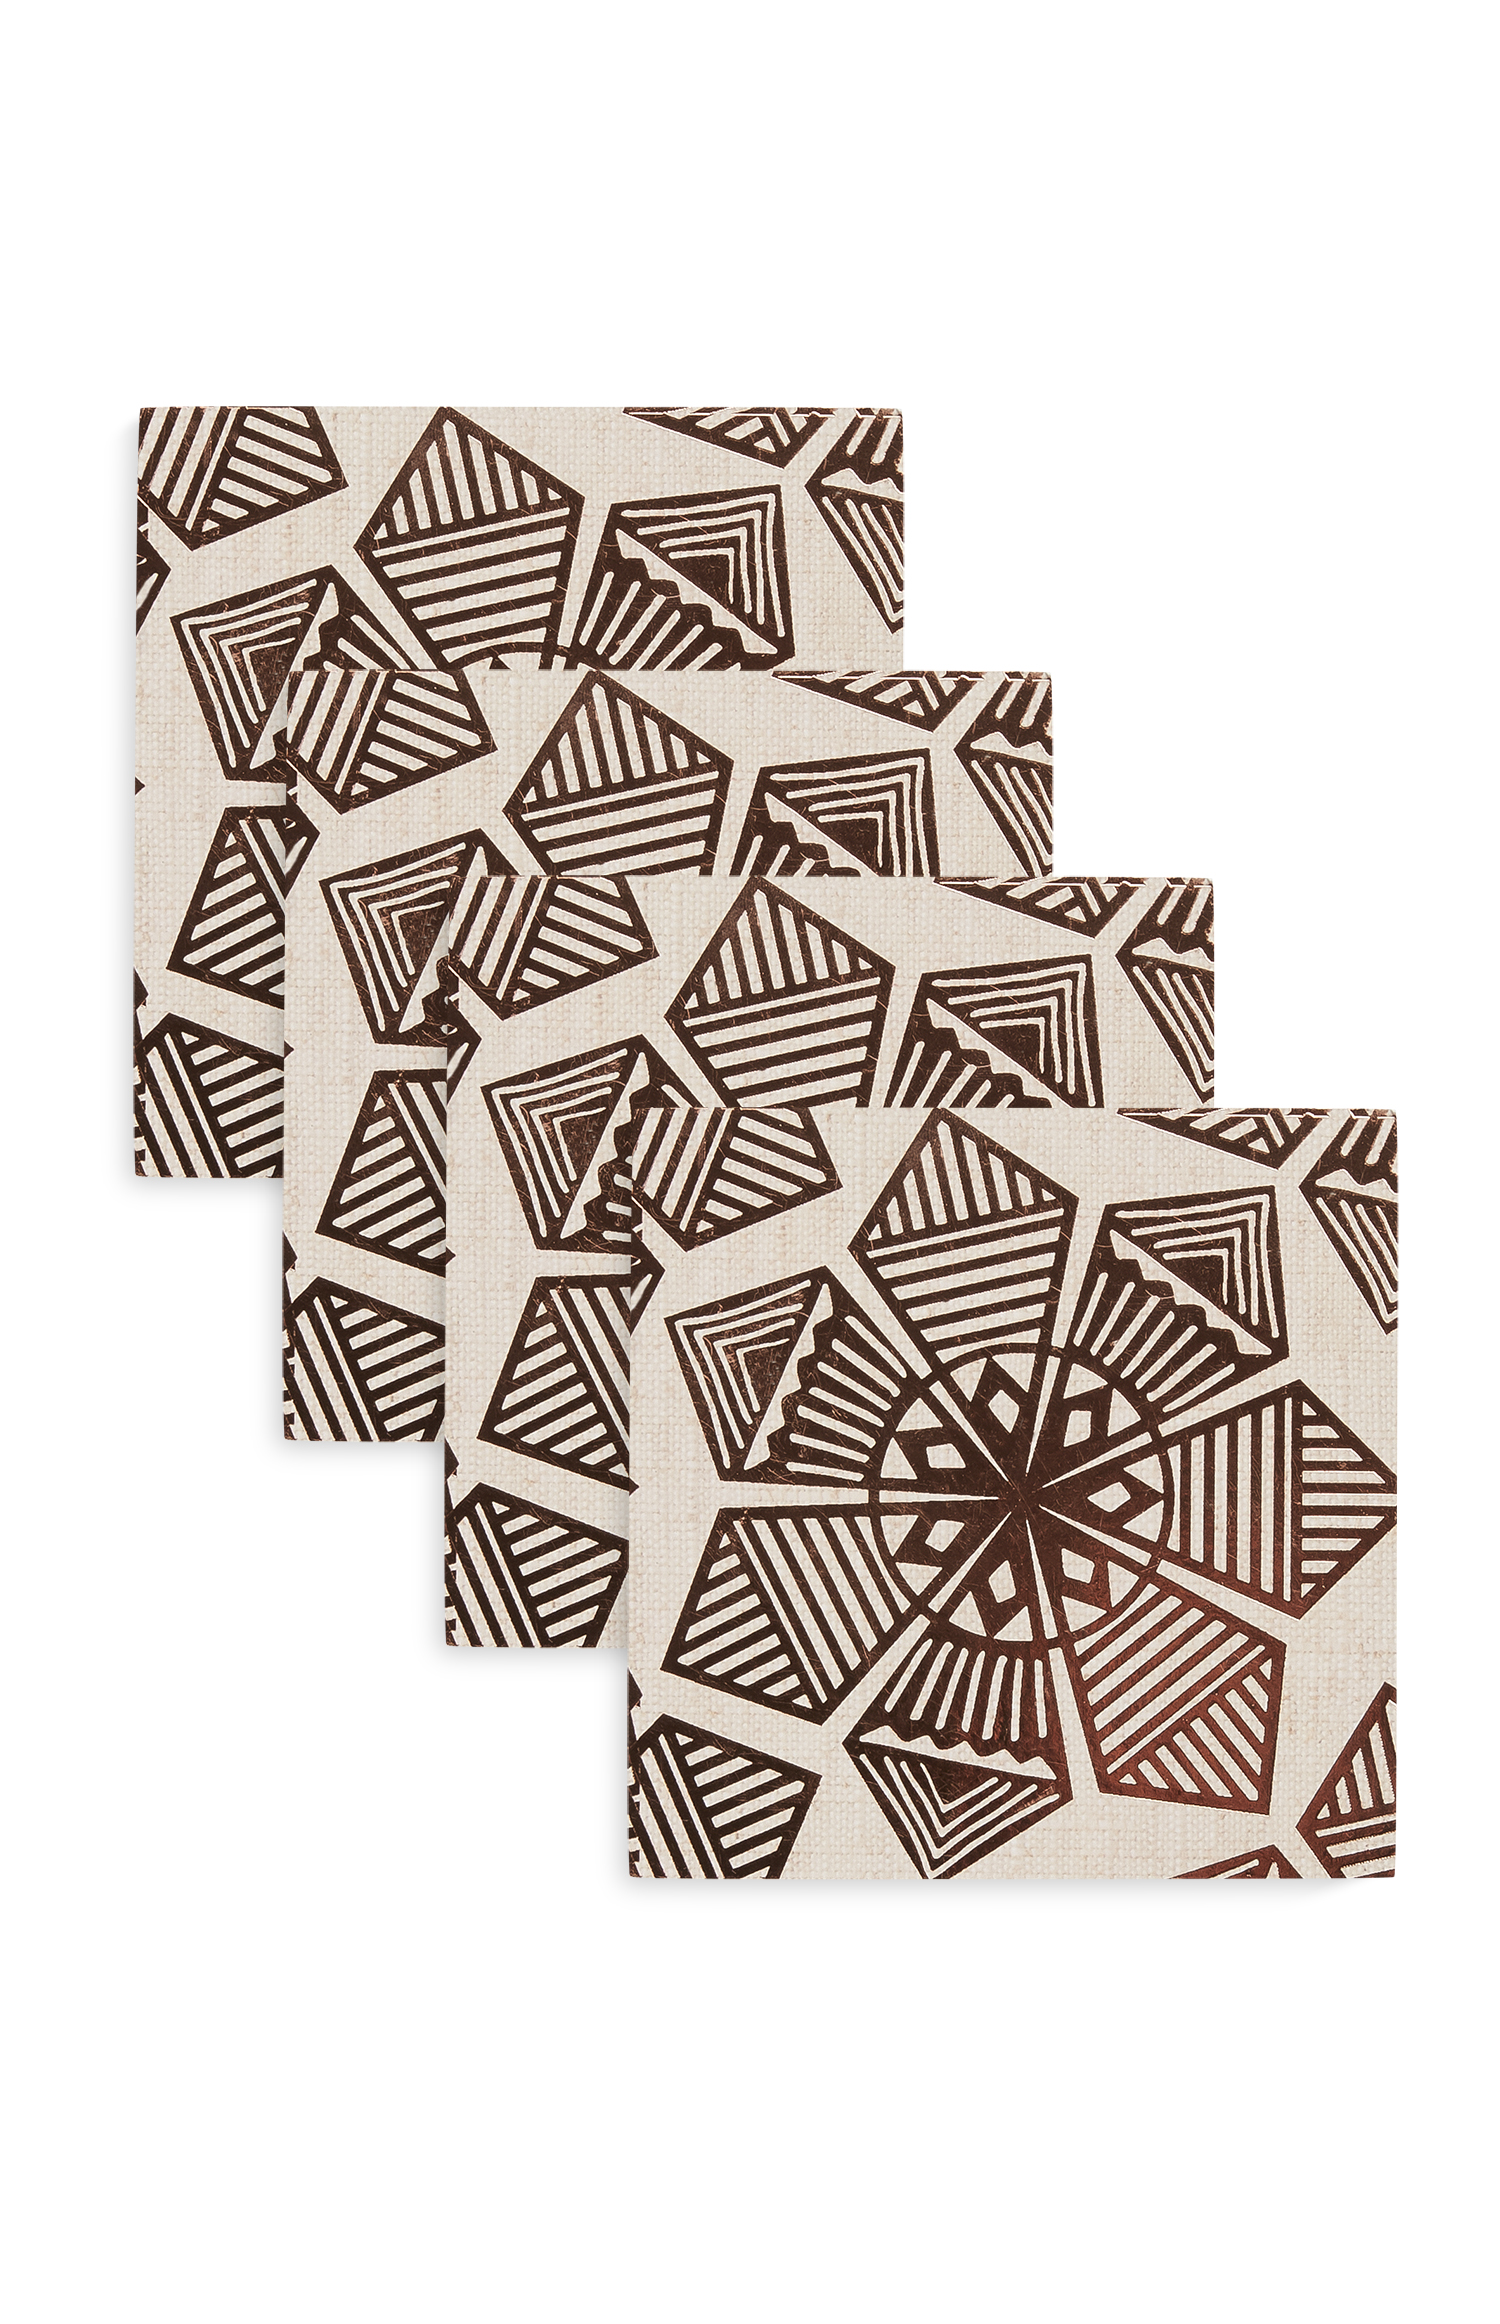 Coasters AW17 Penneys Homeware